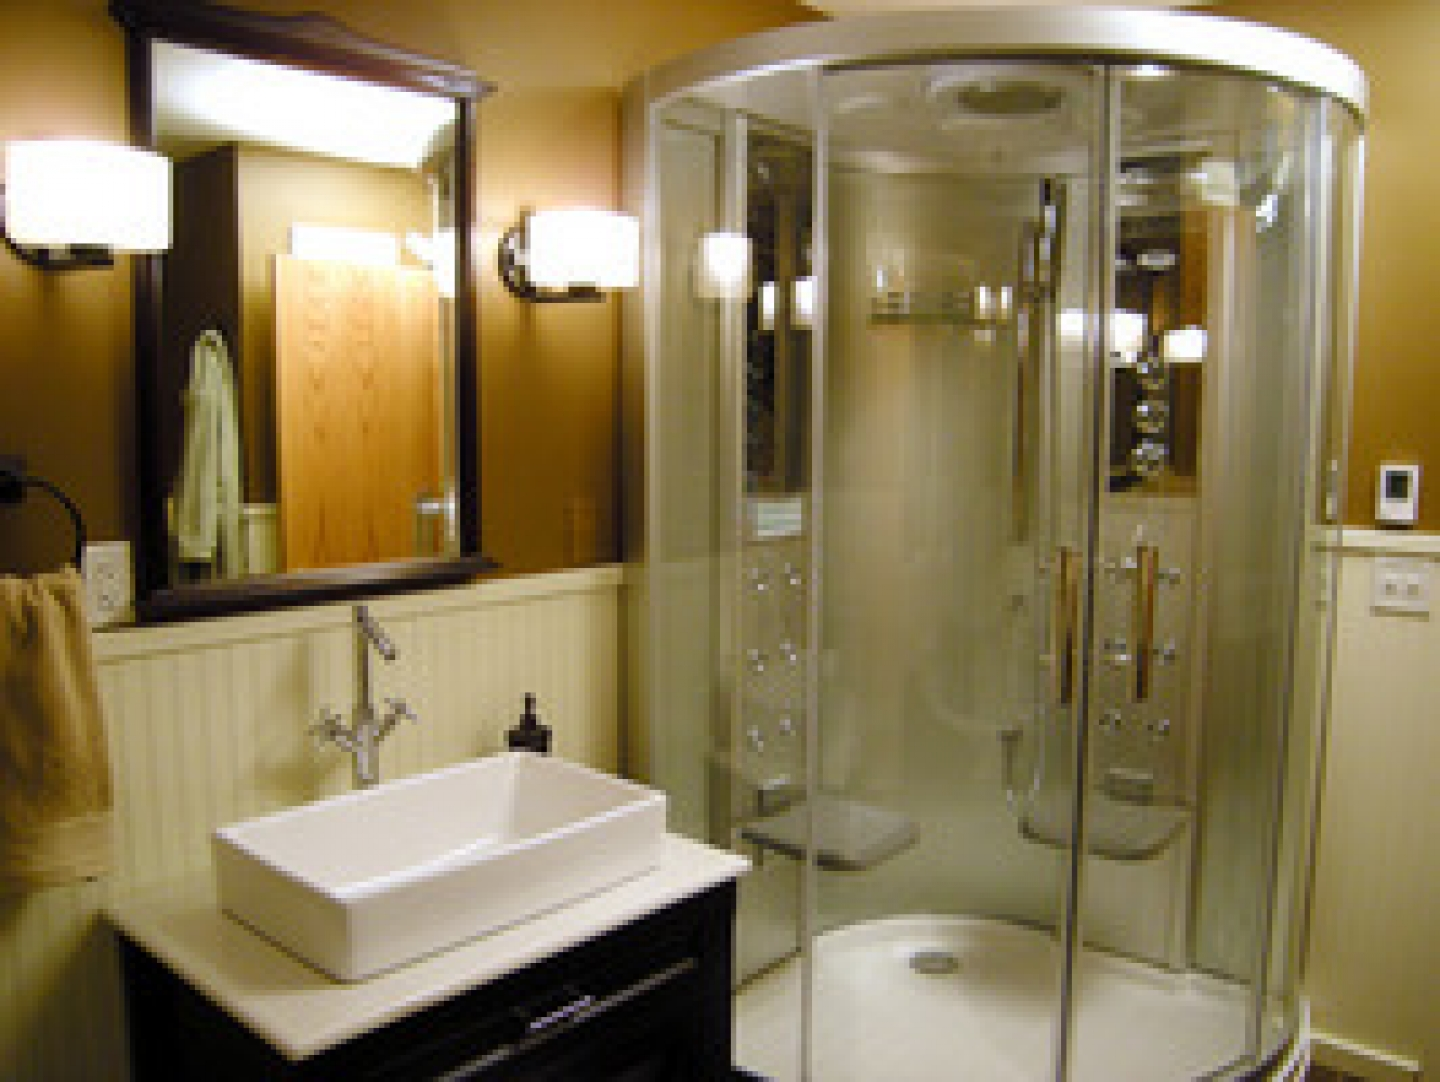 Bathroom Makeovers On The Cheap cheap bathroom makeover - large and beautiful photos. photo to